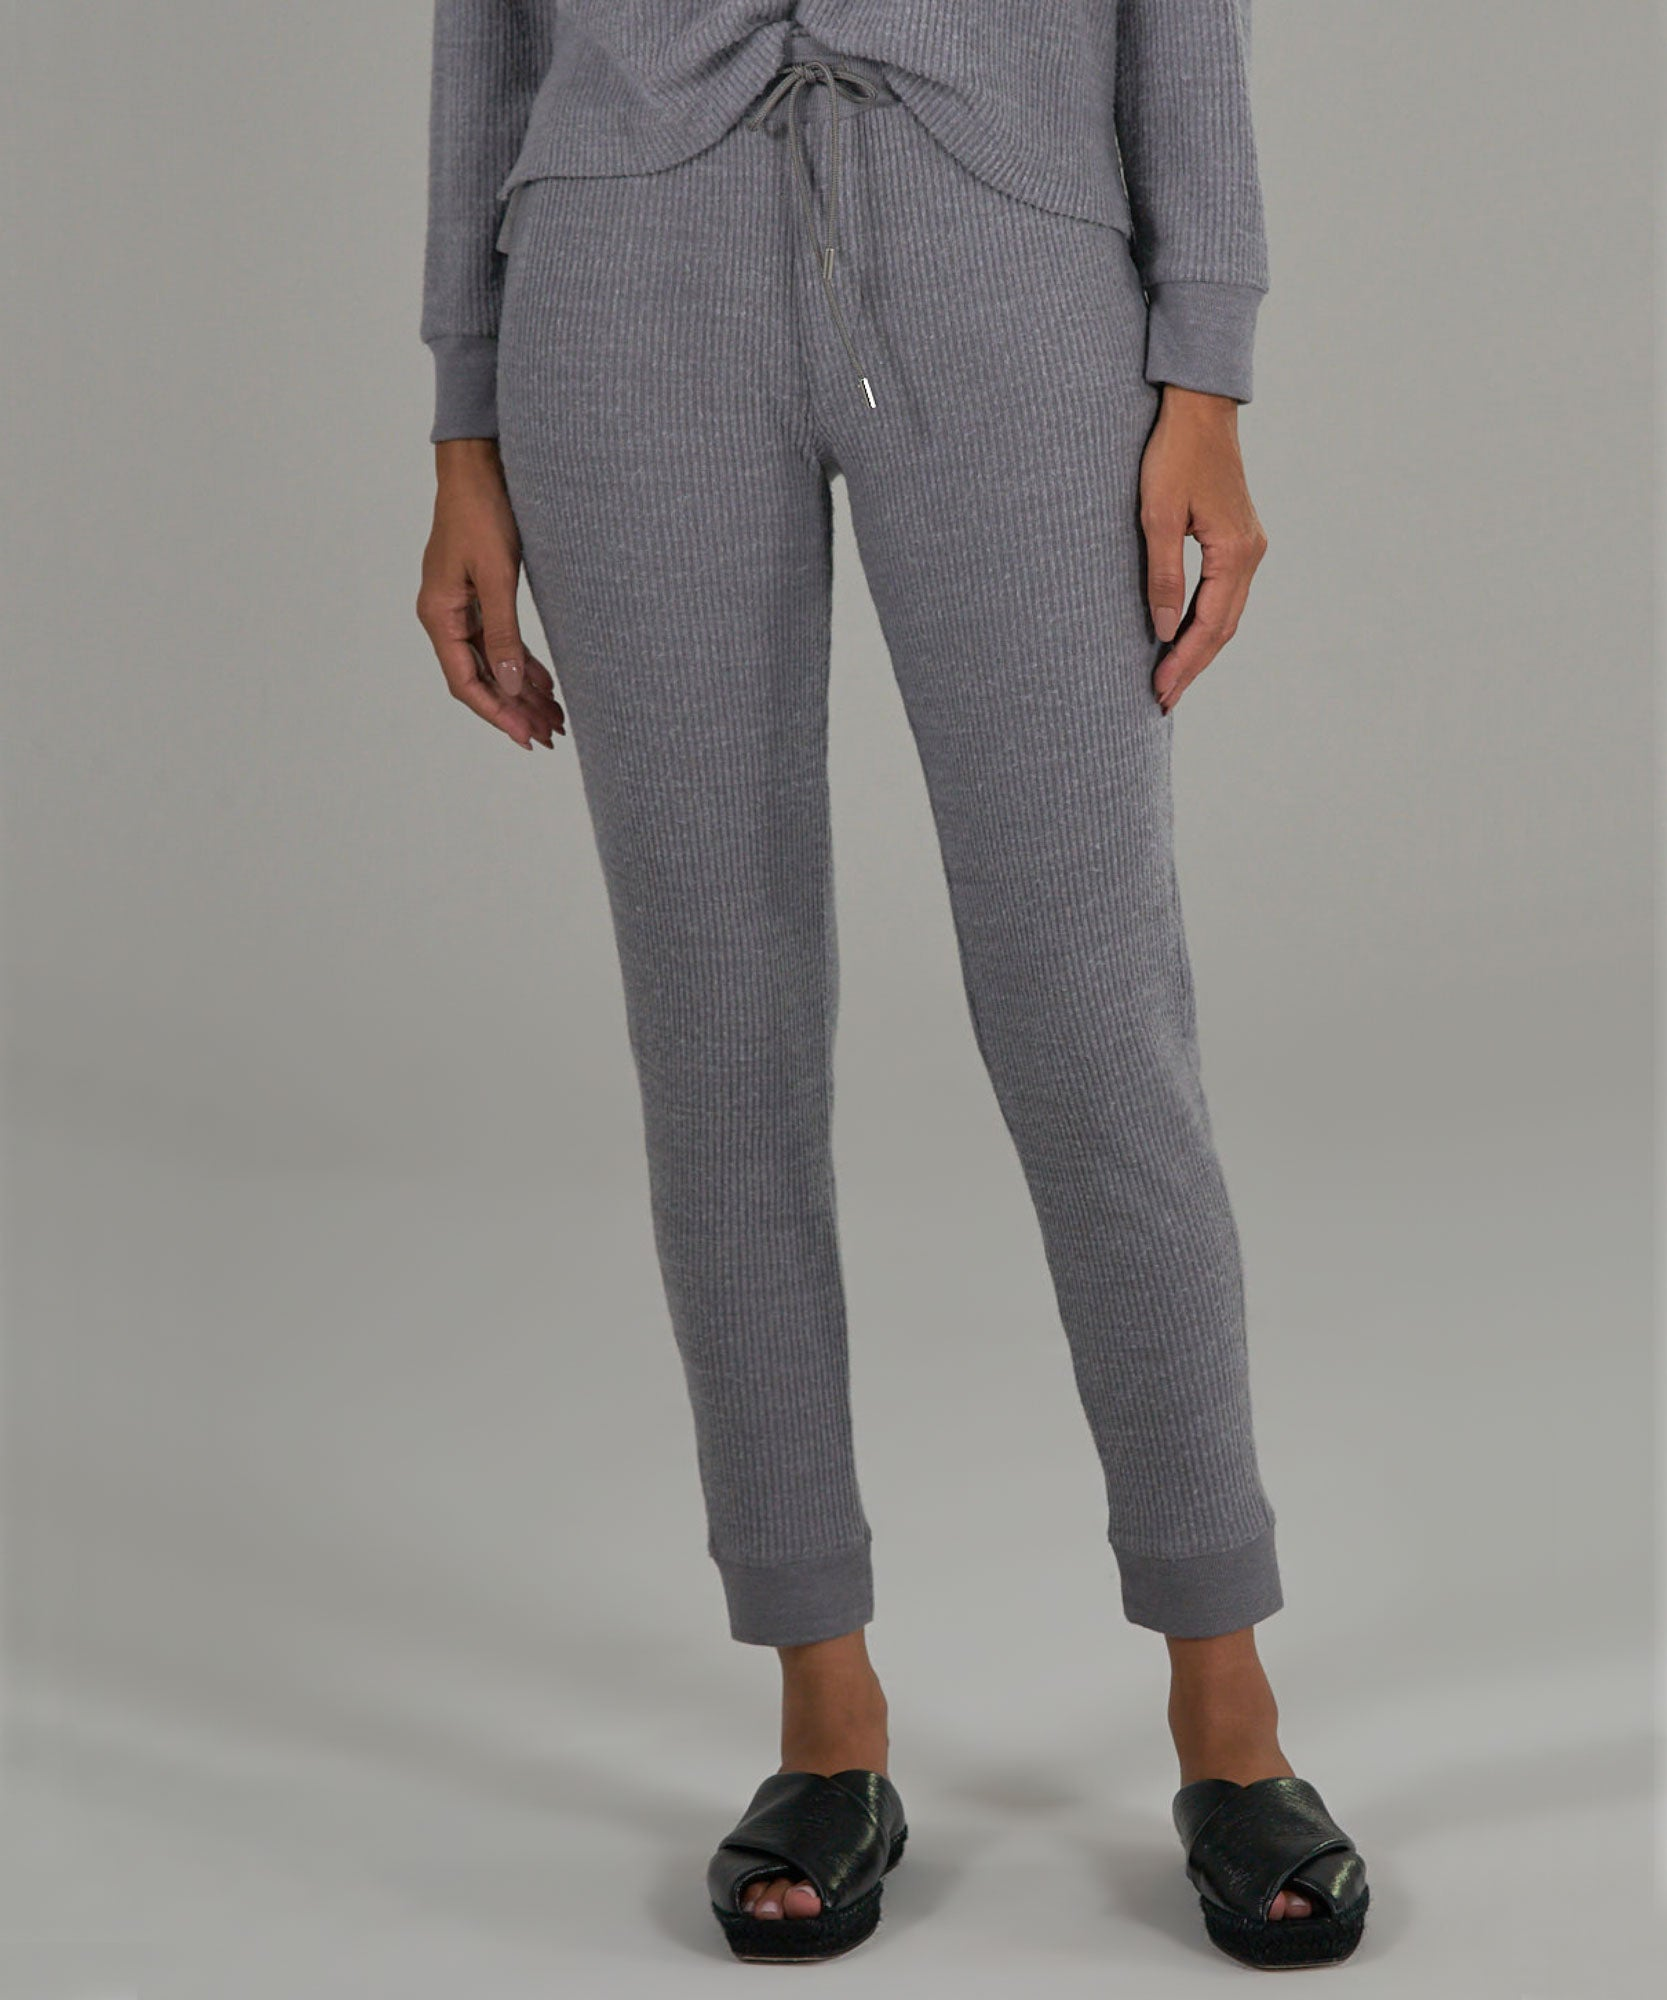 Heather Grey Waffle Pull-On Pants - Women's Pants by ATM Anthony Thomas Melillo